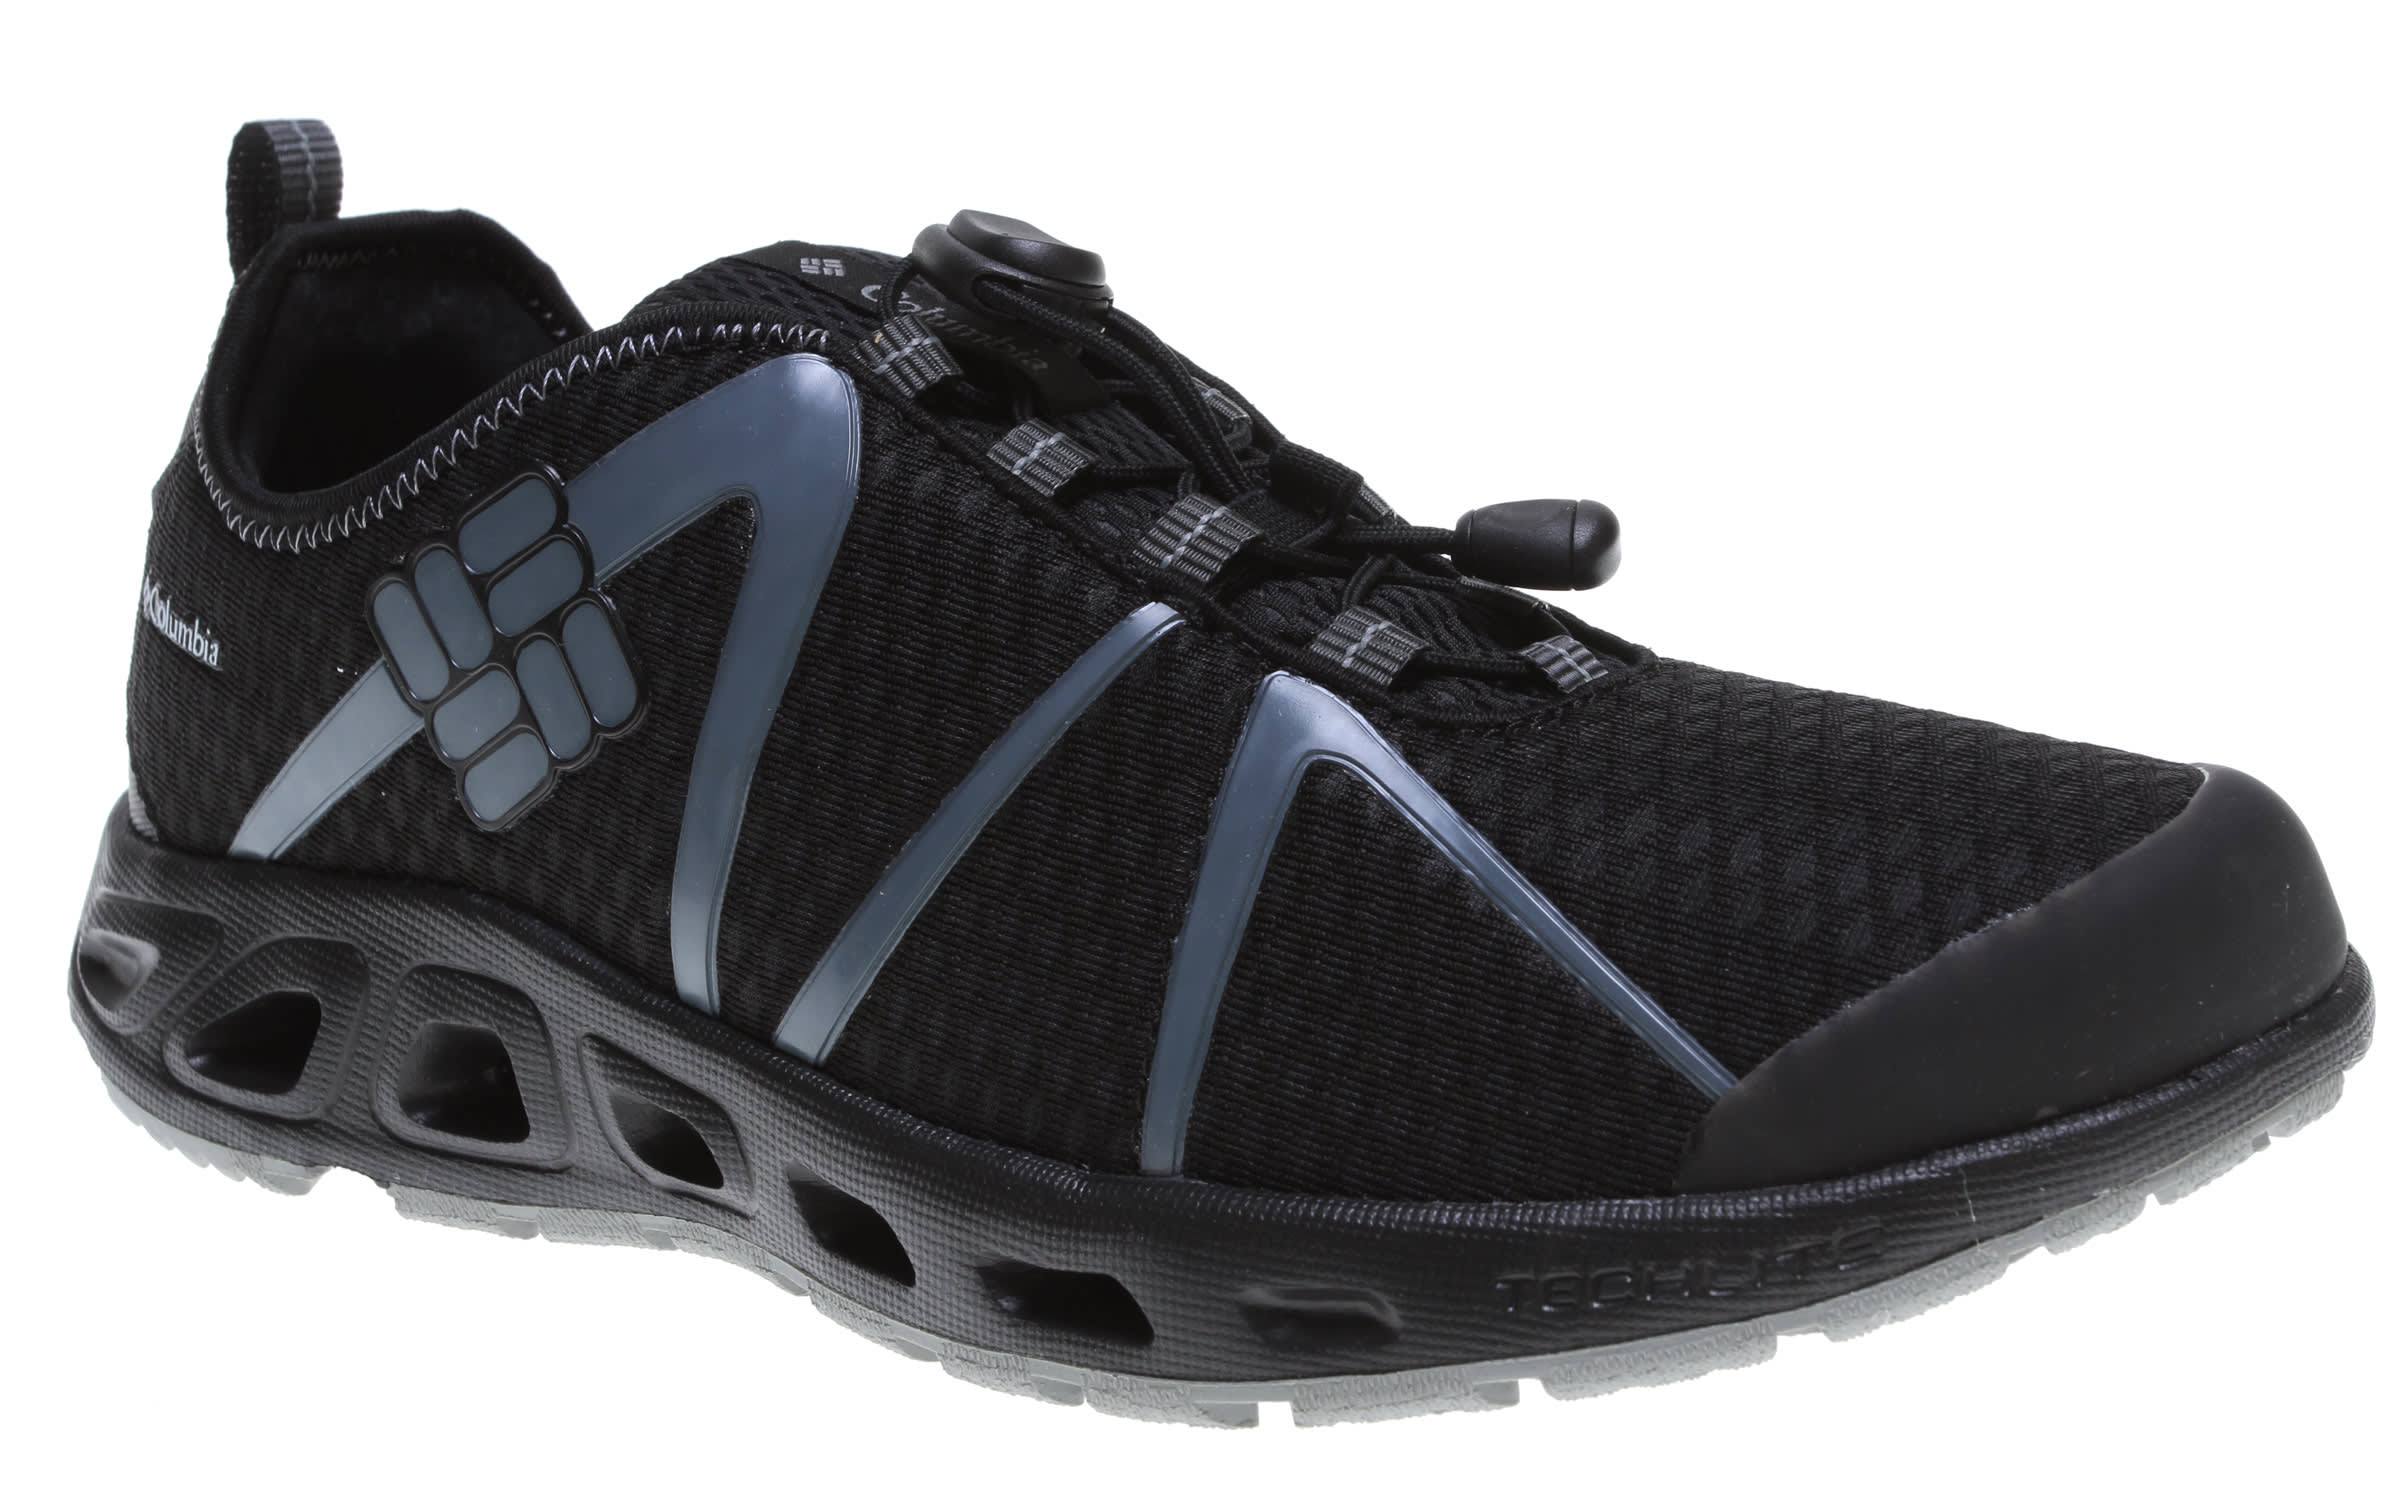 cc6d12b5a1c2 Columbia Powerdrain Cool Water Shoes - thumbnail 2